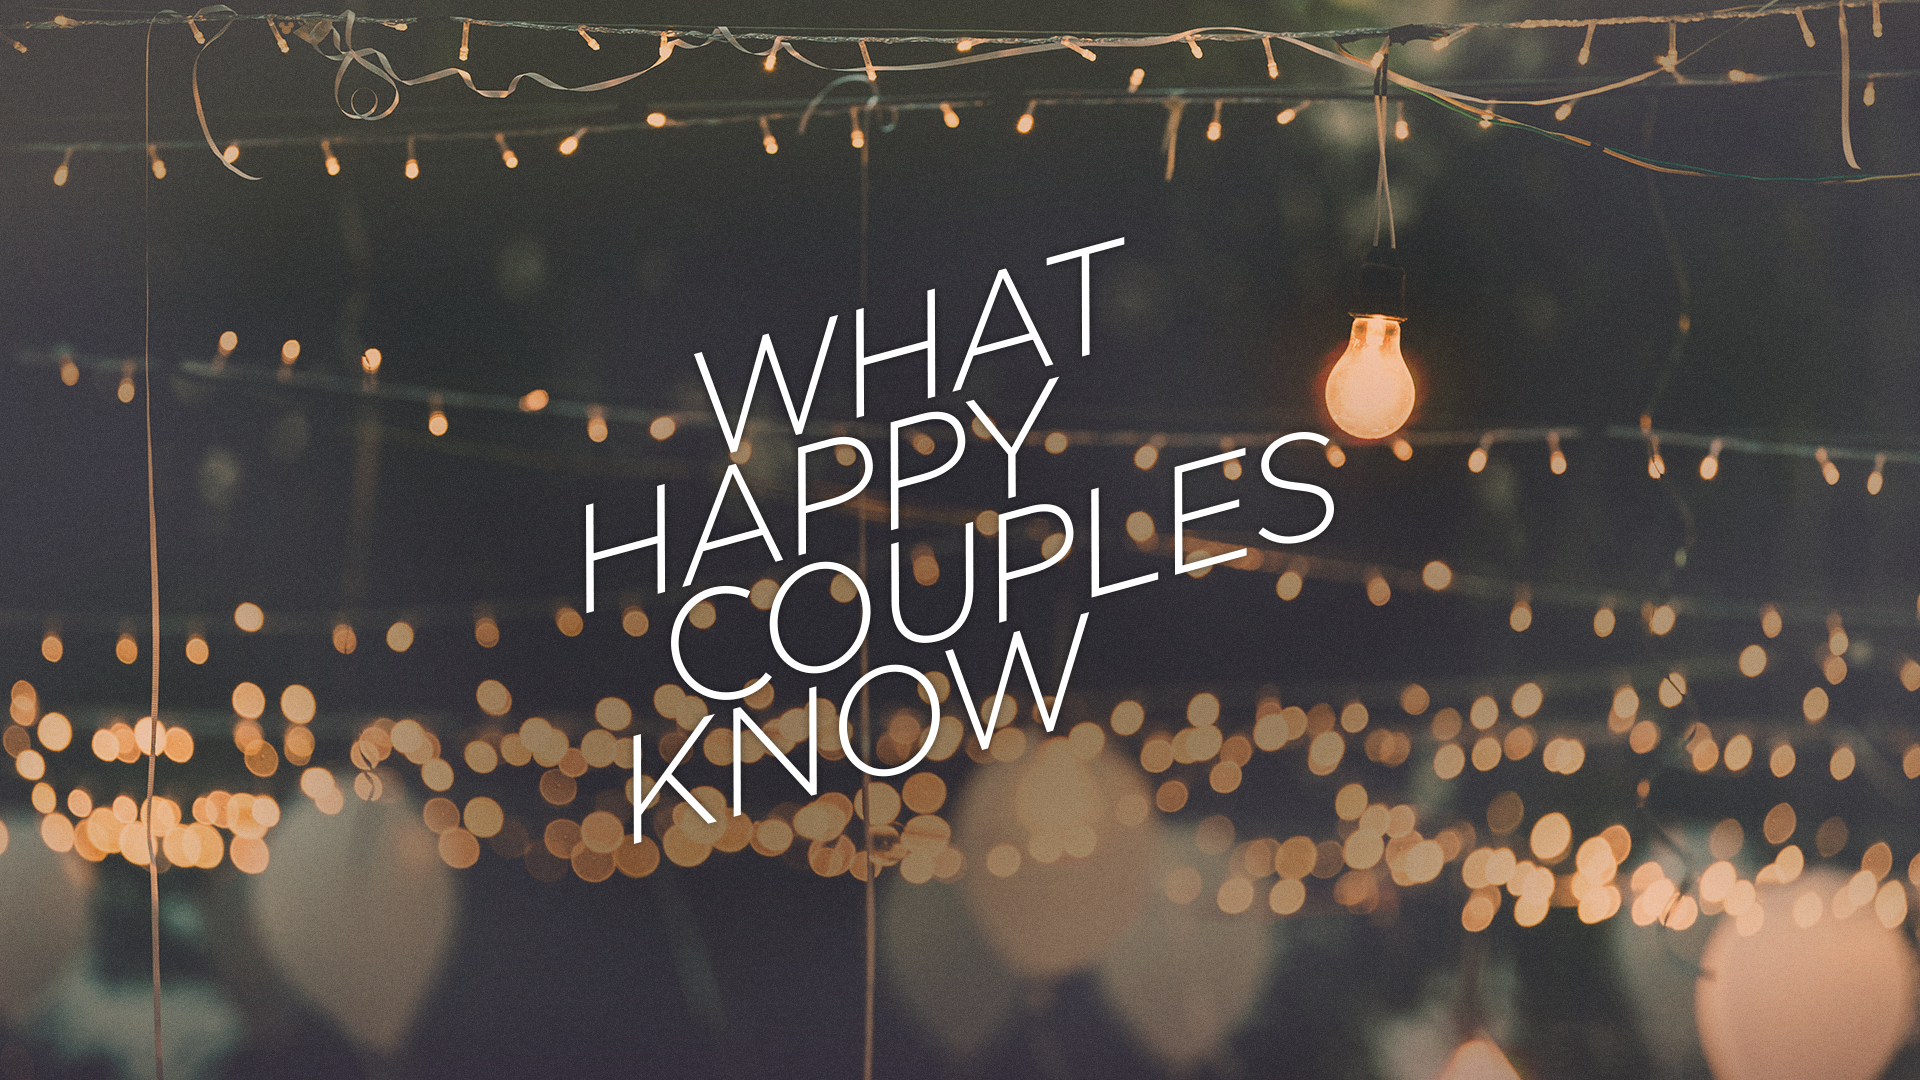 WhatHappyCouplesKnow-1920x1080_1 (1).png